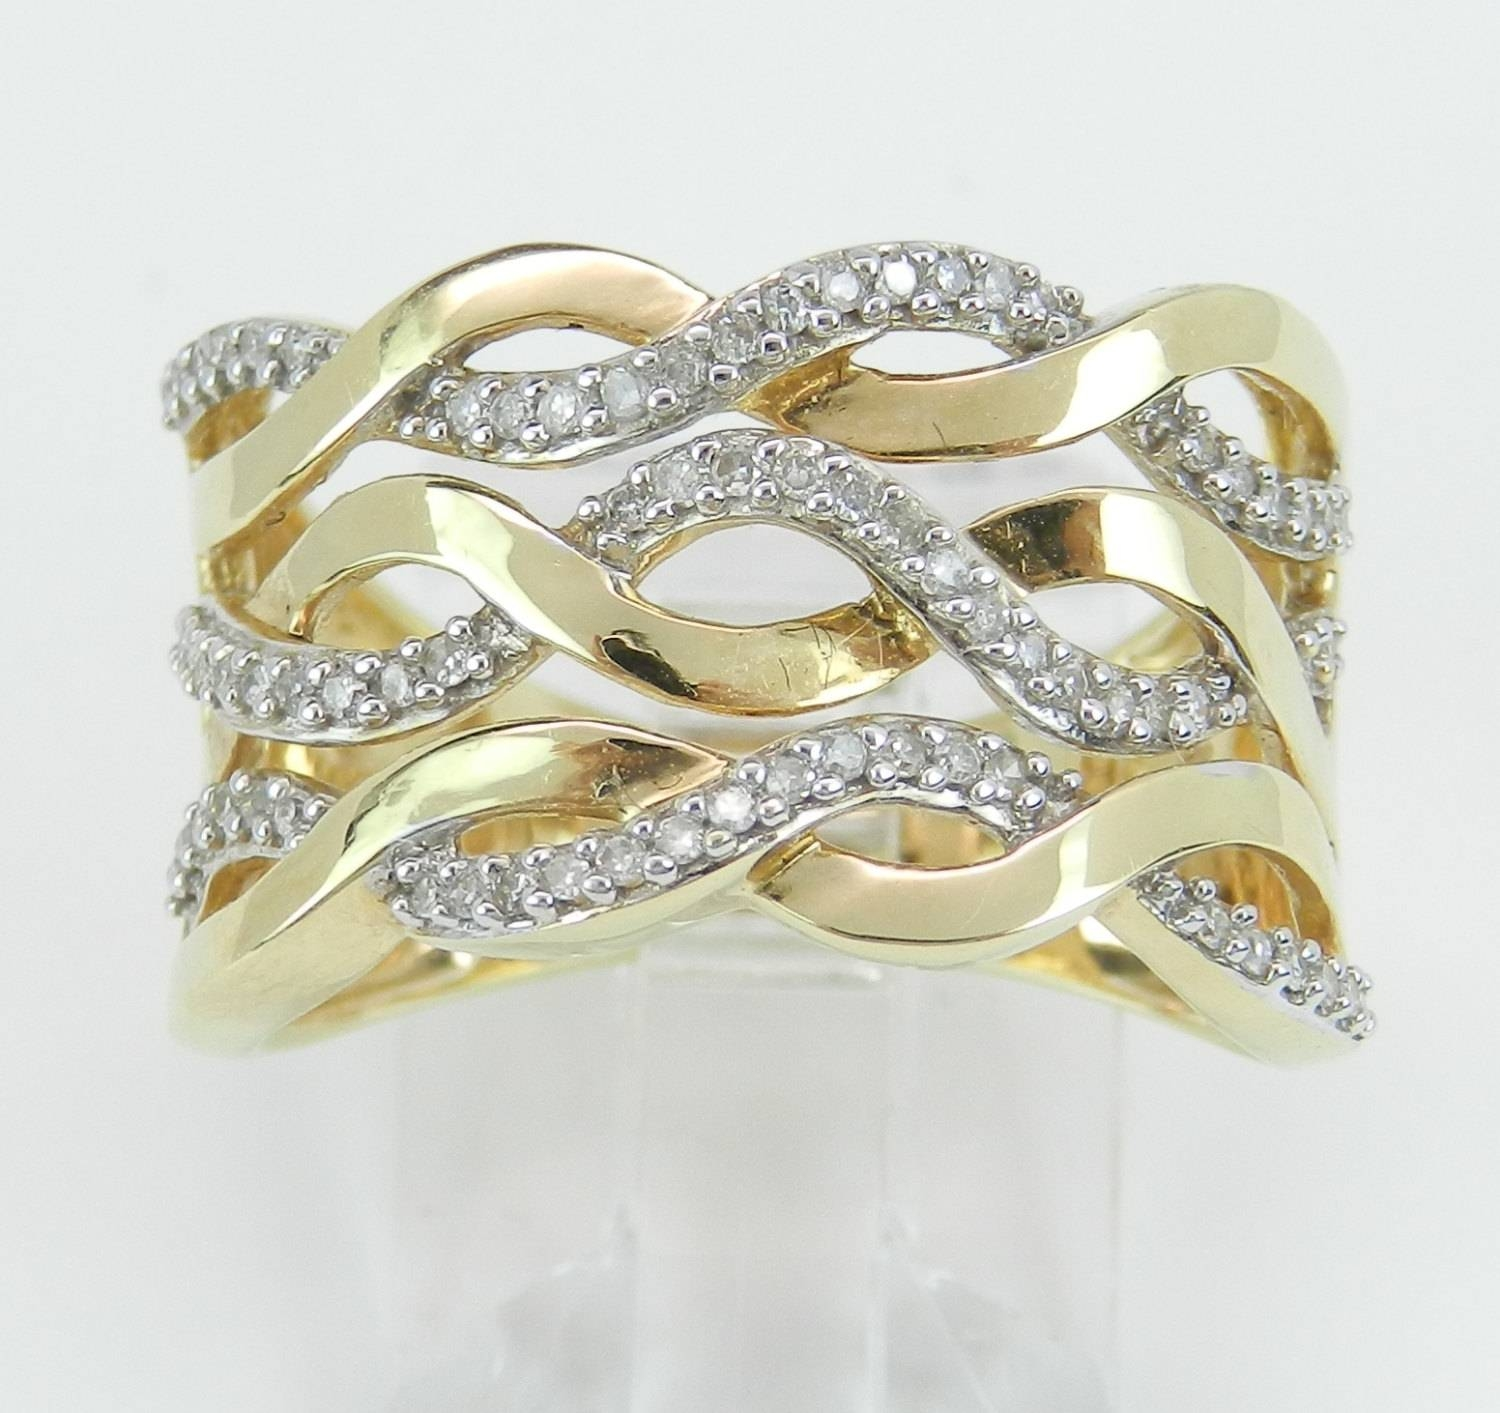 14K Yellow Gold Wide Diamond Anniversary Ring Multi Row Wedding With Regard To Newest Wide Band Diamond Anniversary Rings (Gallery 14 of 25)